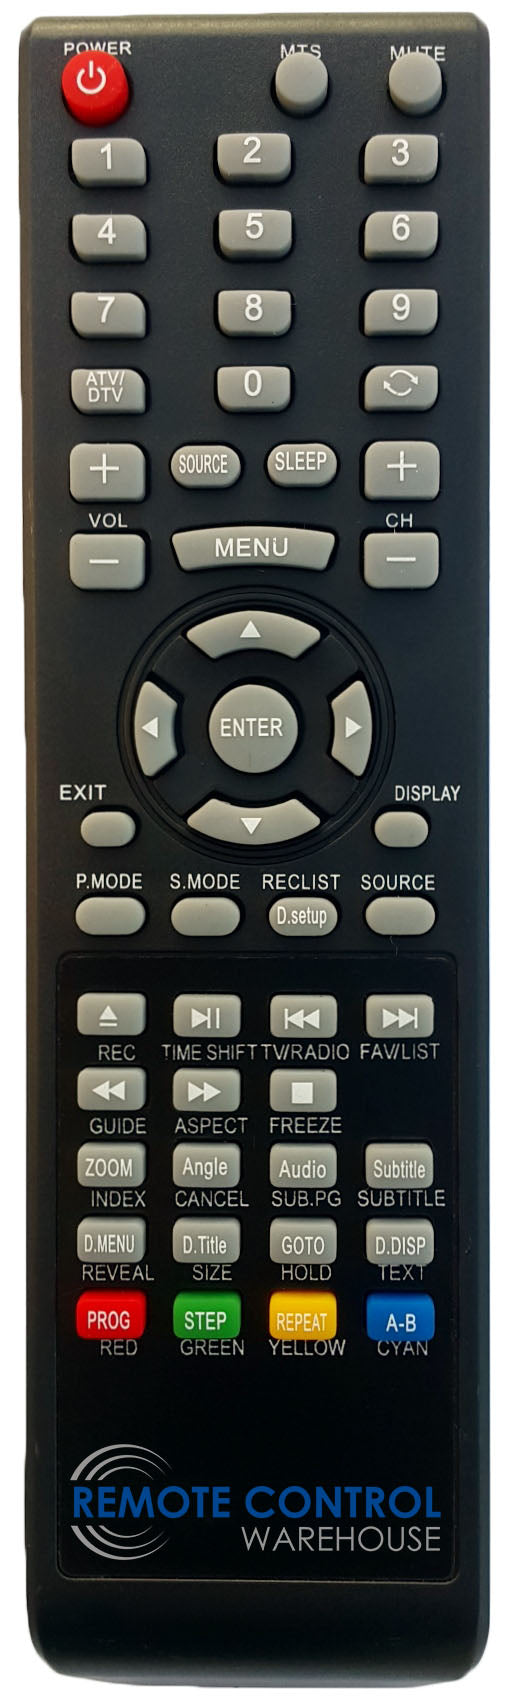 REPLACEMENT SONIQ REMOTE CONTROL QT120 - L26V10A REVA  TV